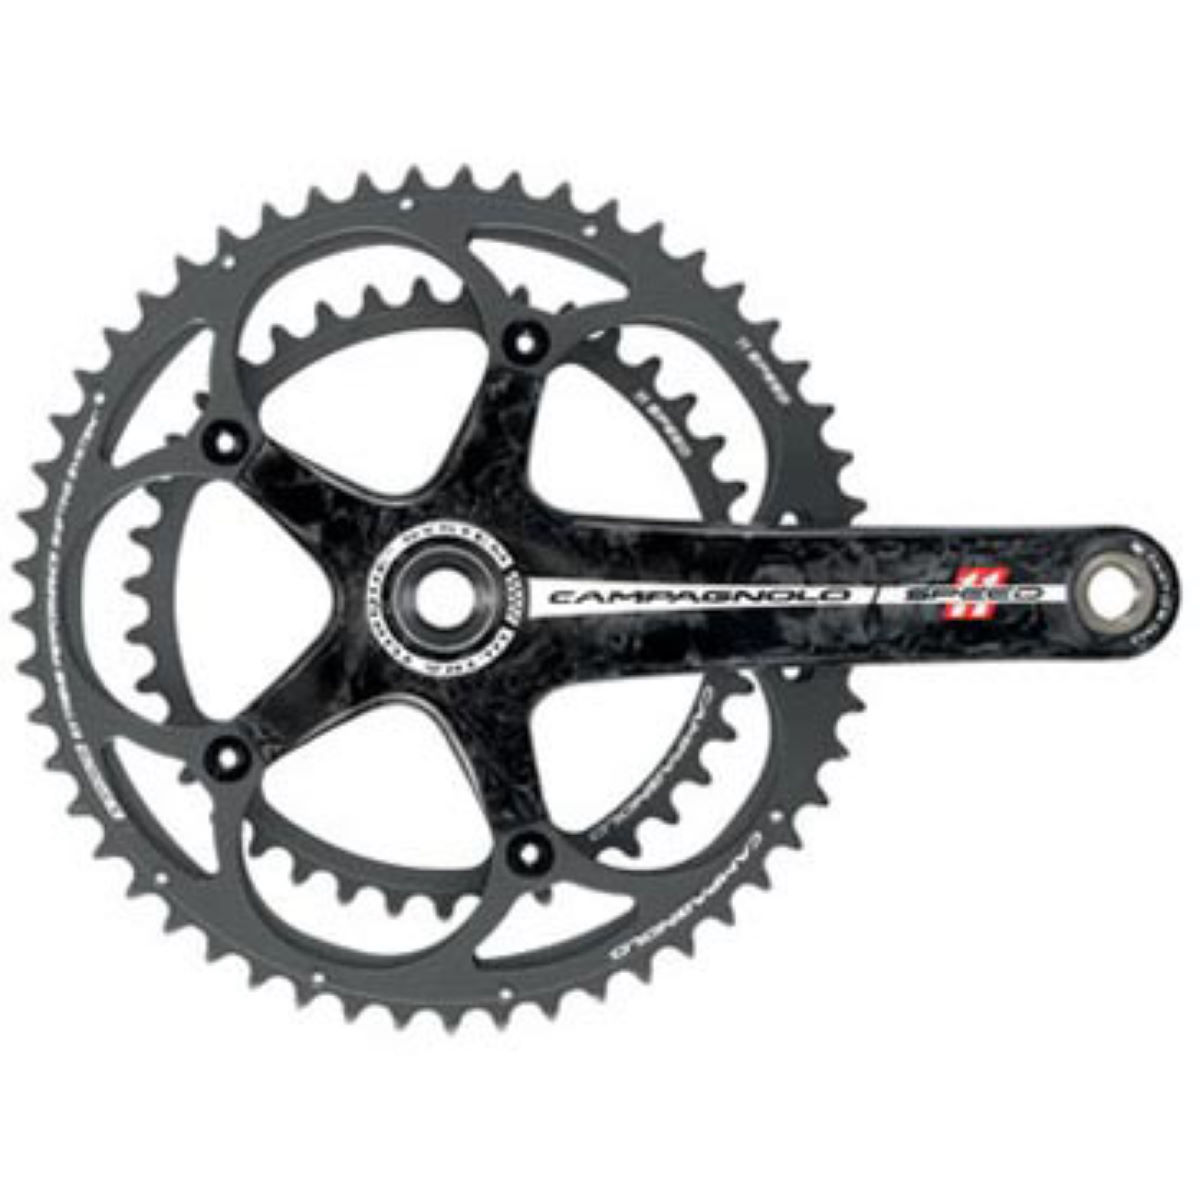 Campagnolo Ultra-Torque 165mm 11 Speed Carbon Chainset